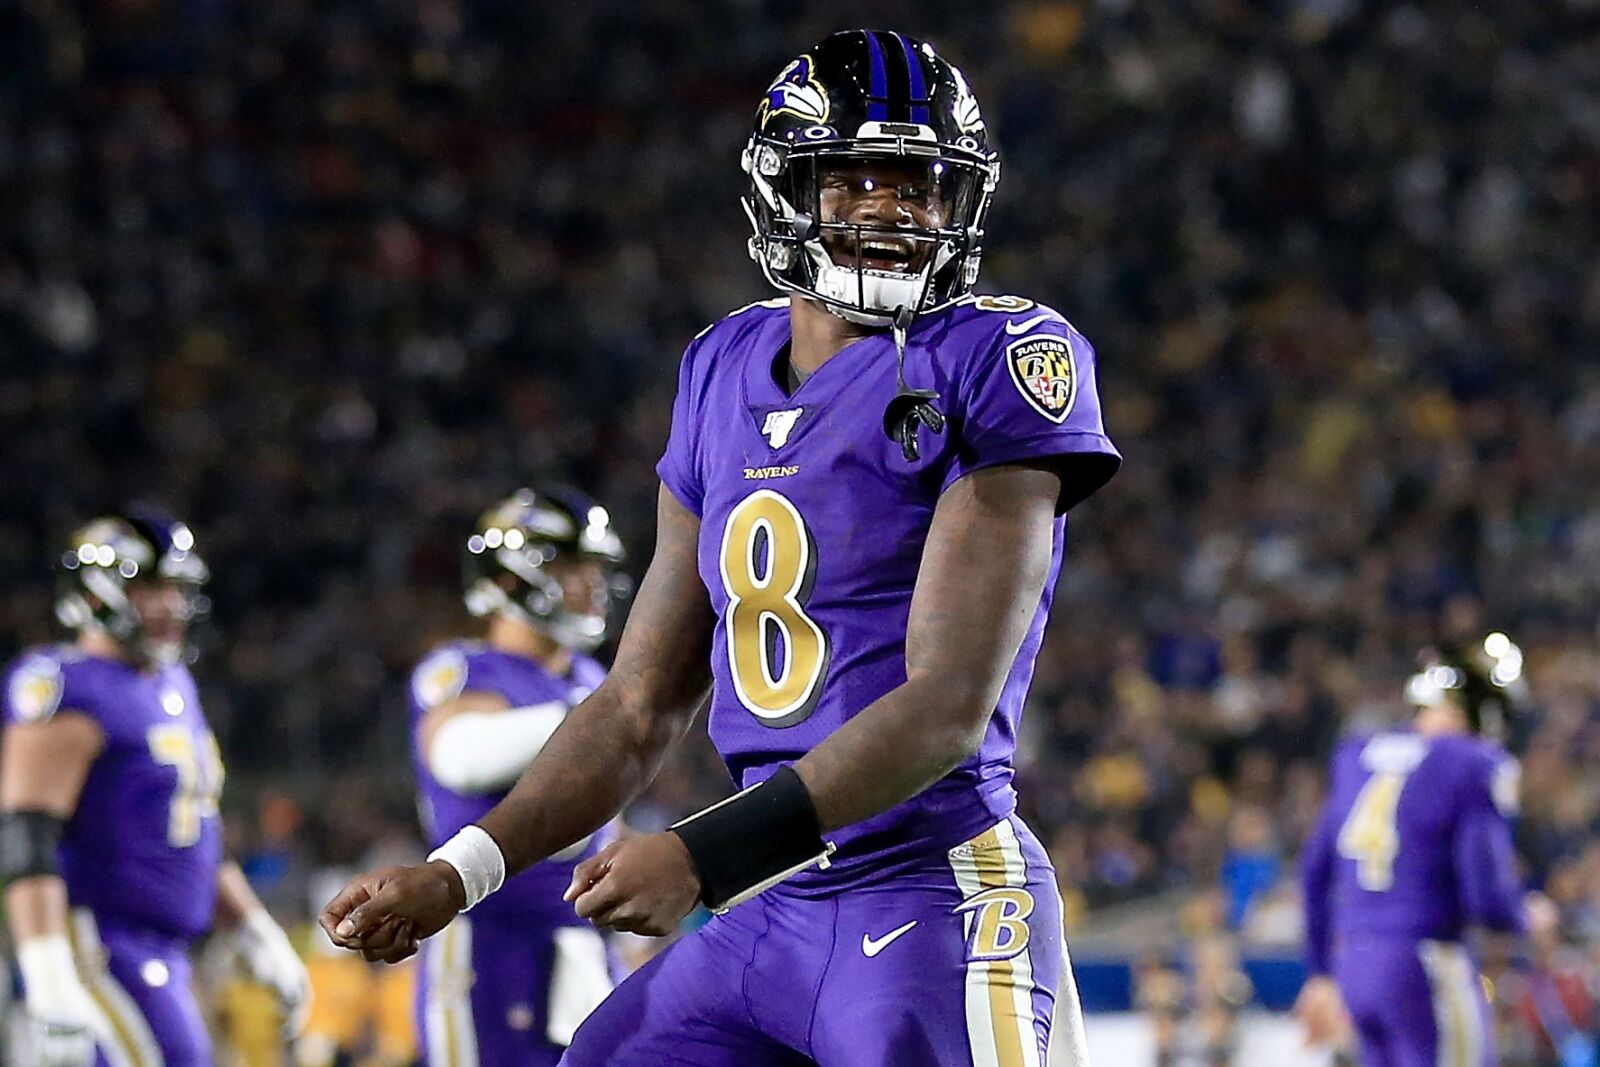 Lamar Jackson is ahead of schedule in the progression of his career